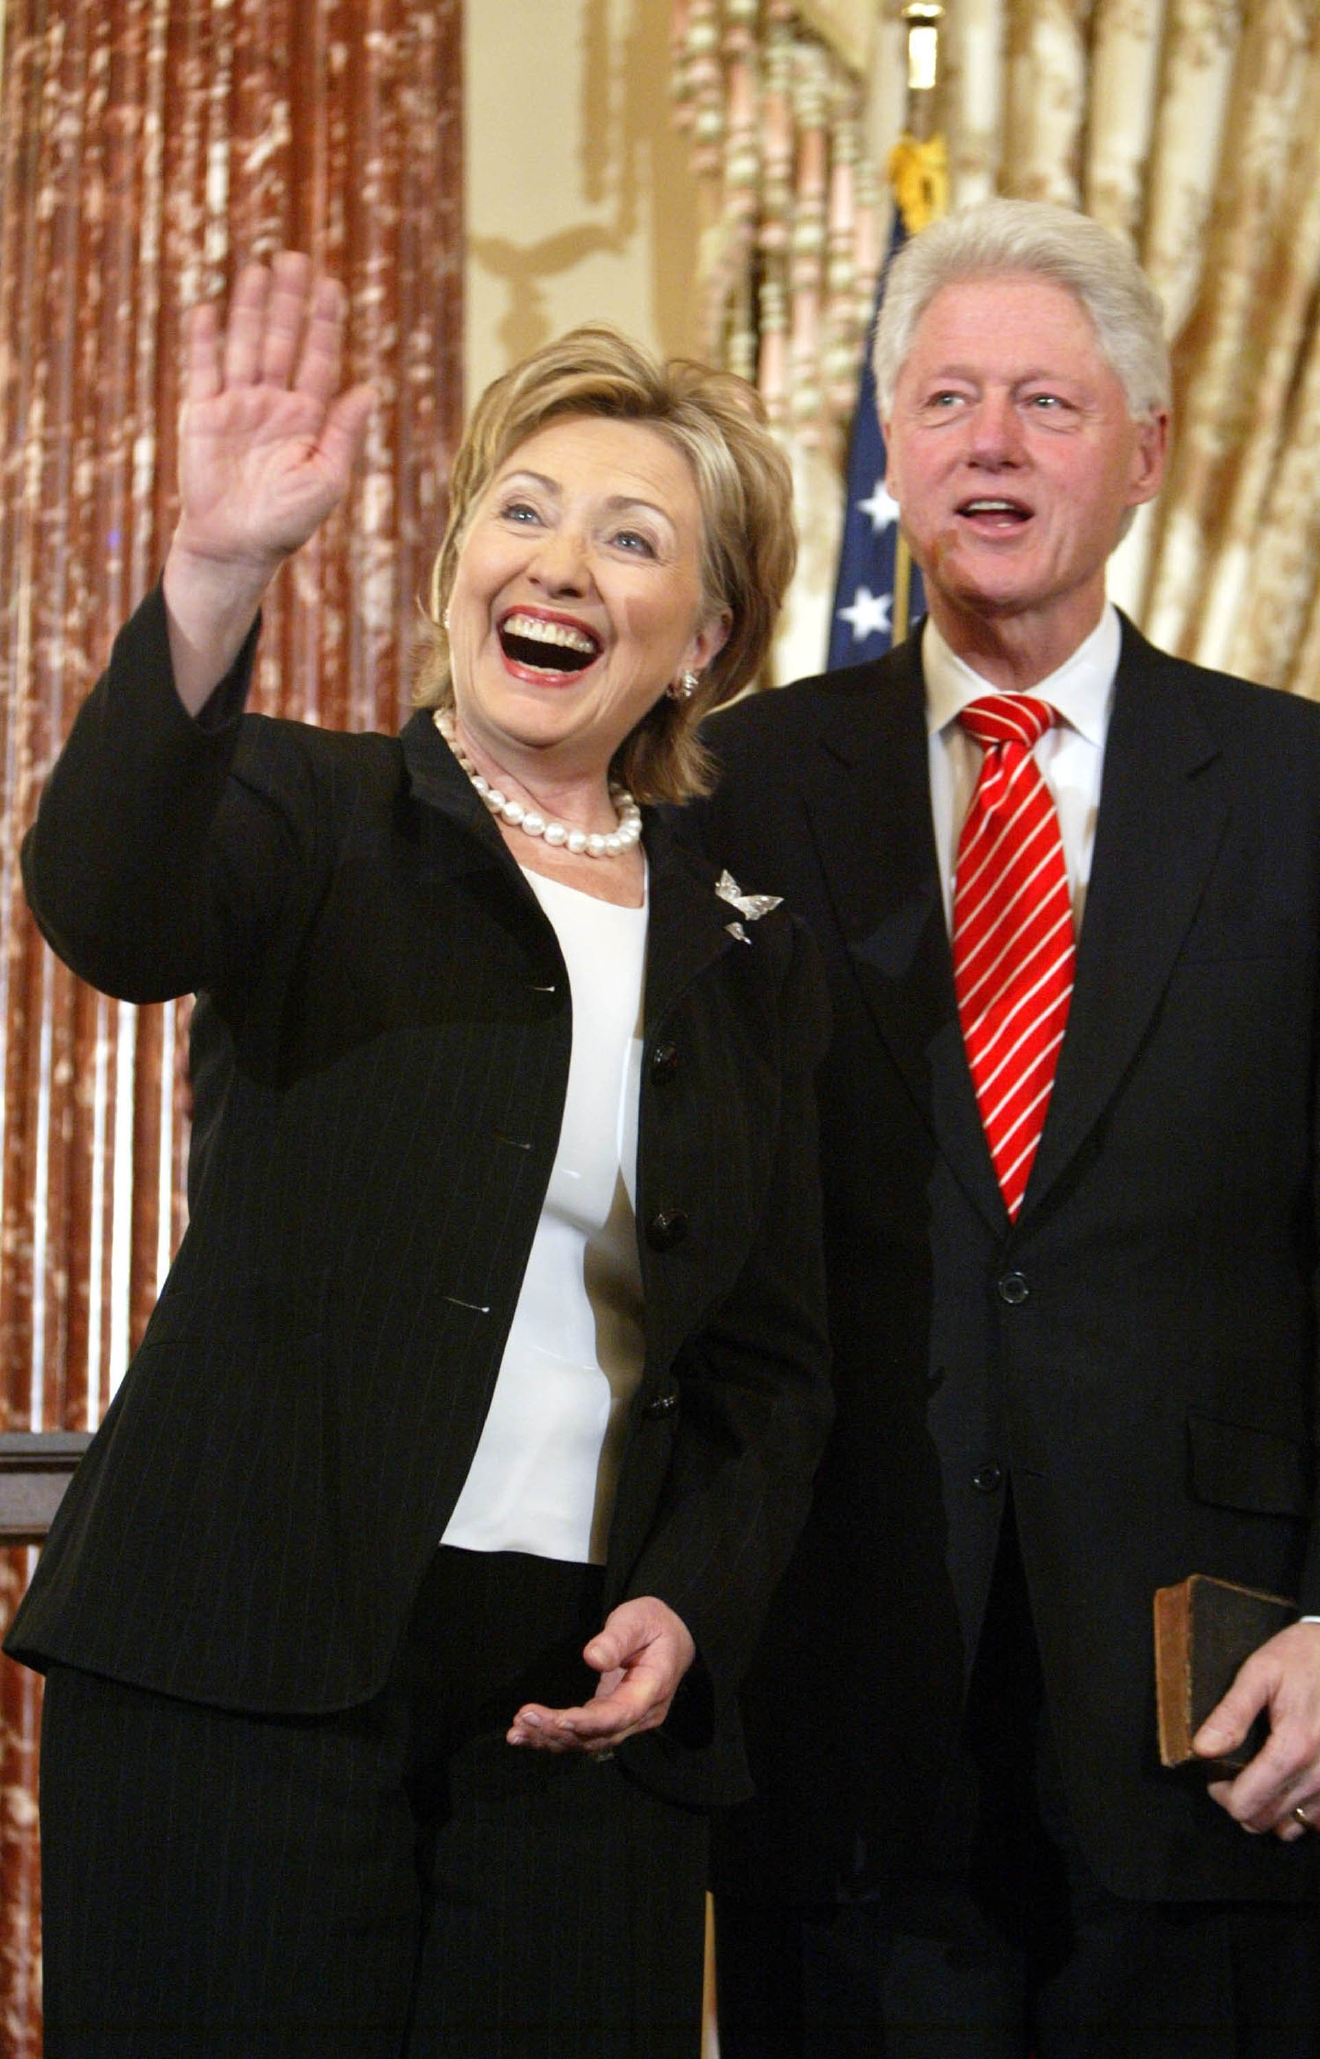 Hillary Clinton and Bill Clinton The swearing-in of Secretary of State Hillary Clinton at the State Department Washington  Featuring: Hillary Clinton and Bill Clinton Where: DC, United States When: 02 Feb 2009 Credit: WENN.com